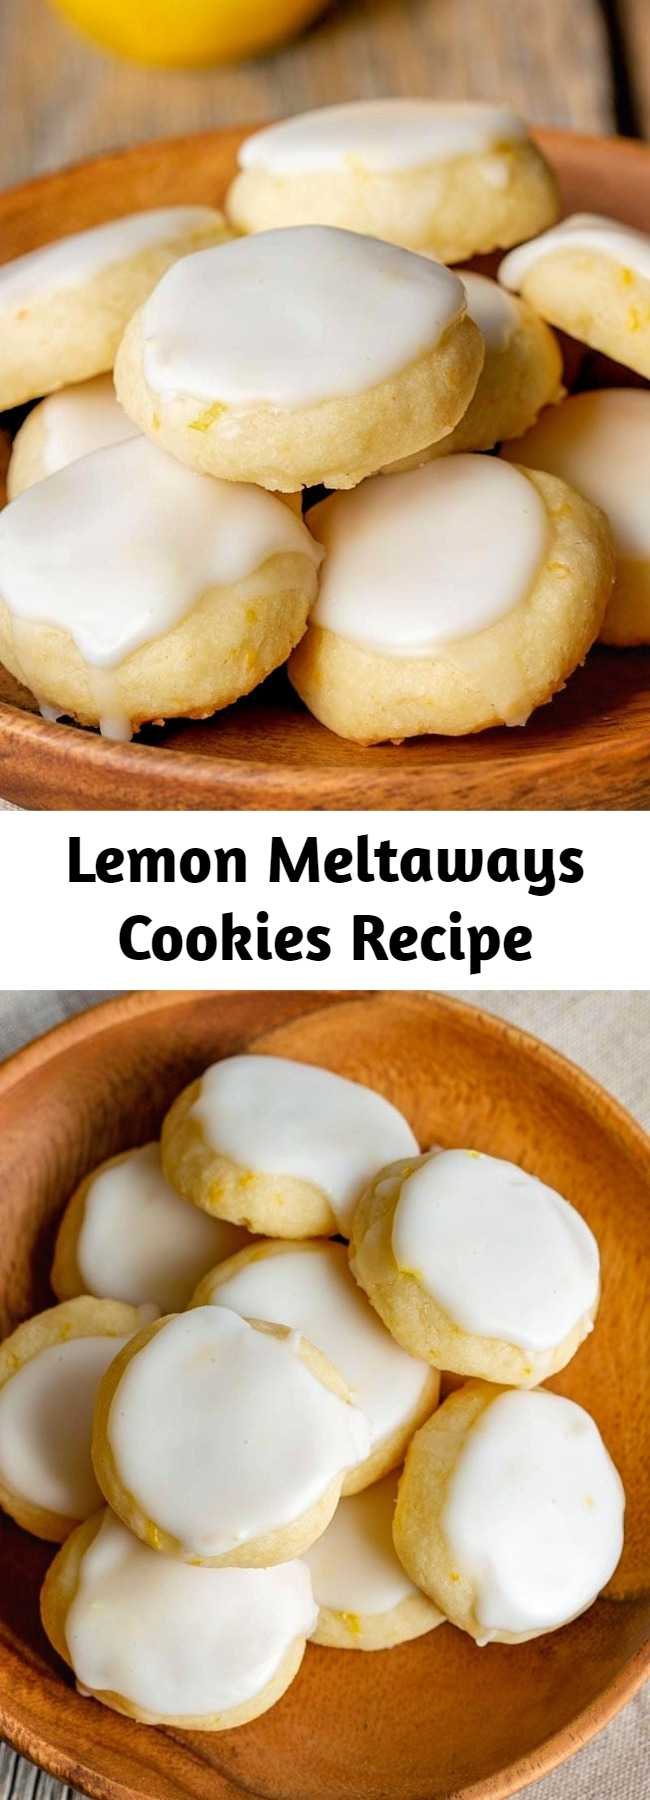 Lemon Meltaways Cookies Recipe - Light and buttery, these bite-sized lemon cookies are a real treat!